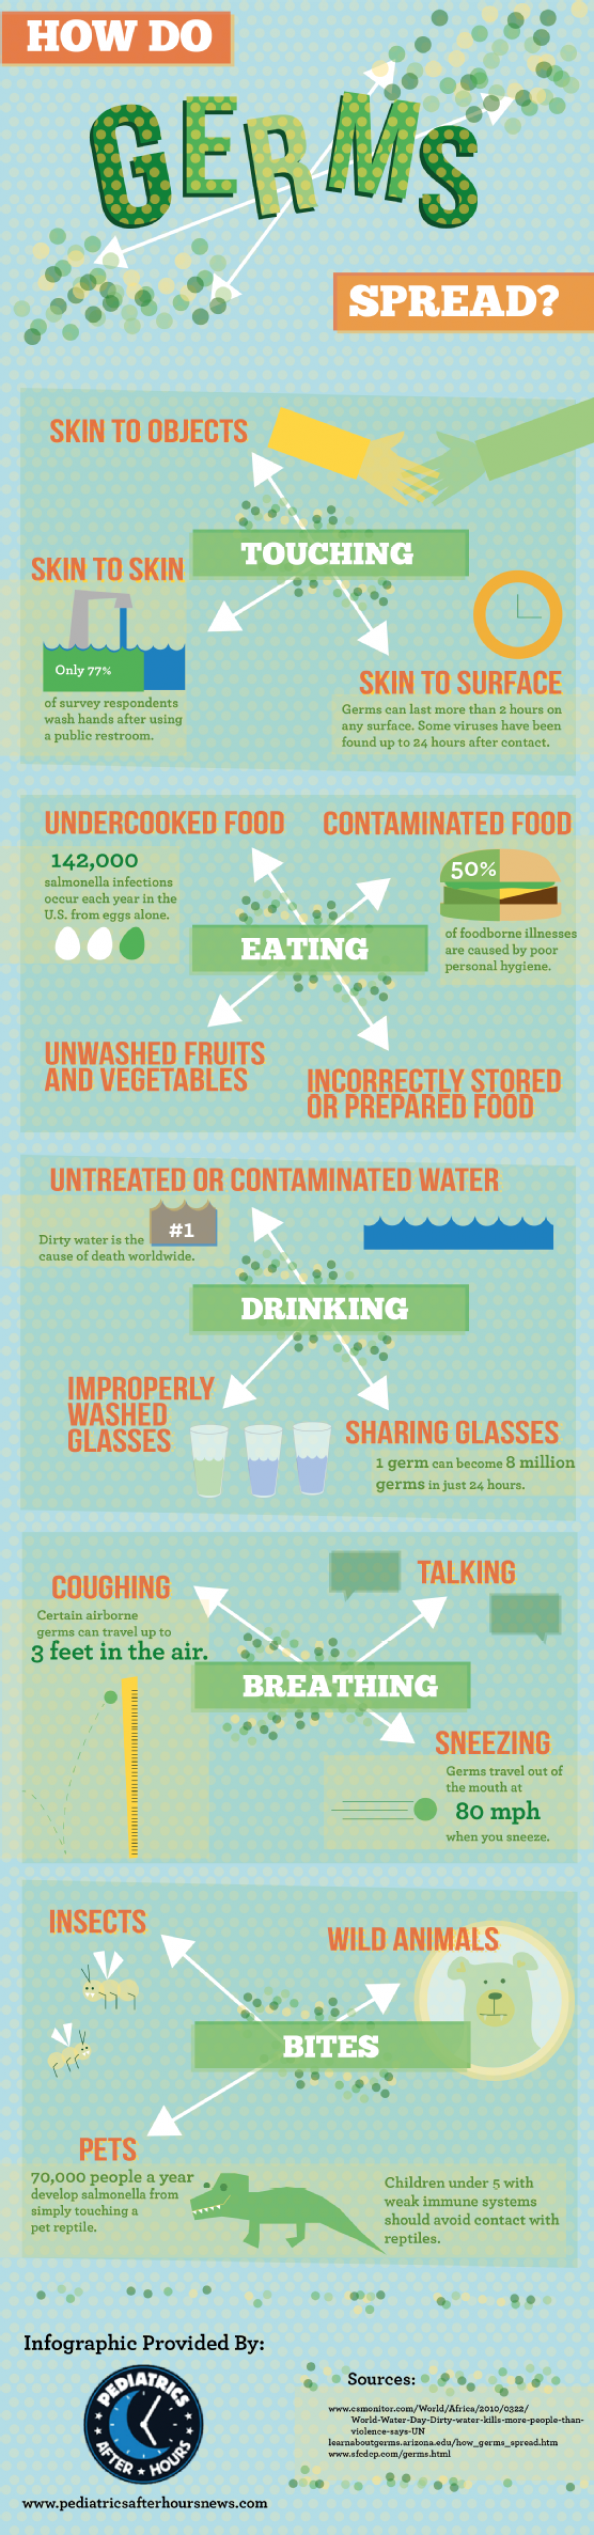 How do germs spread infographic